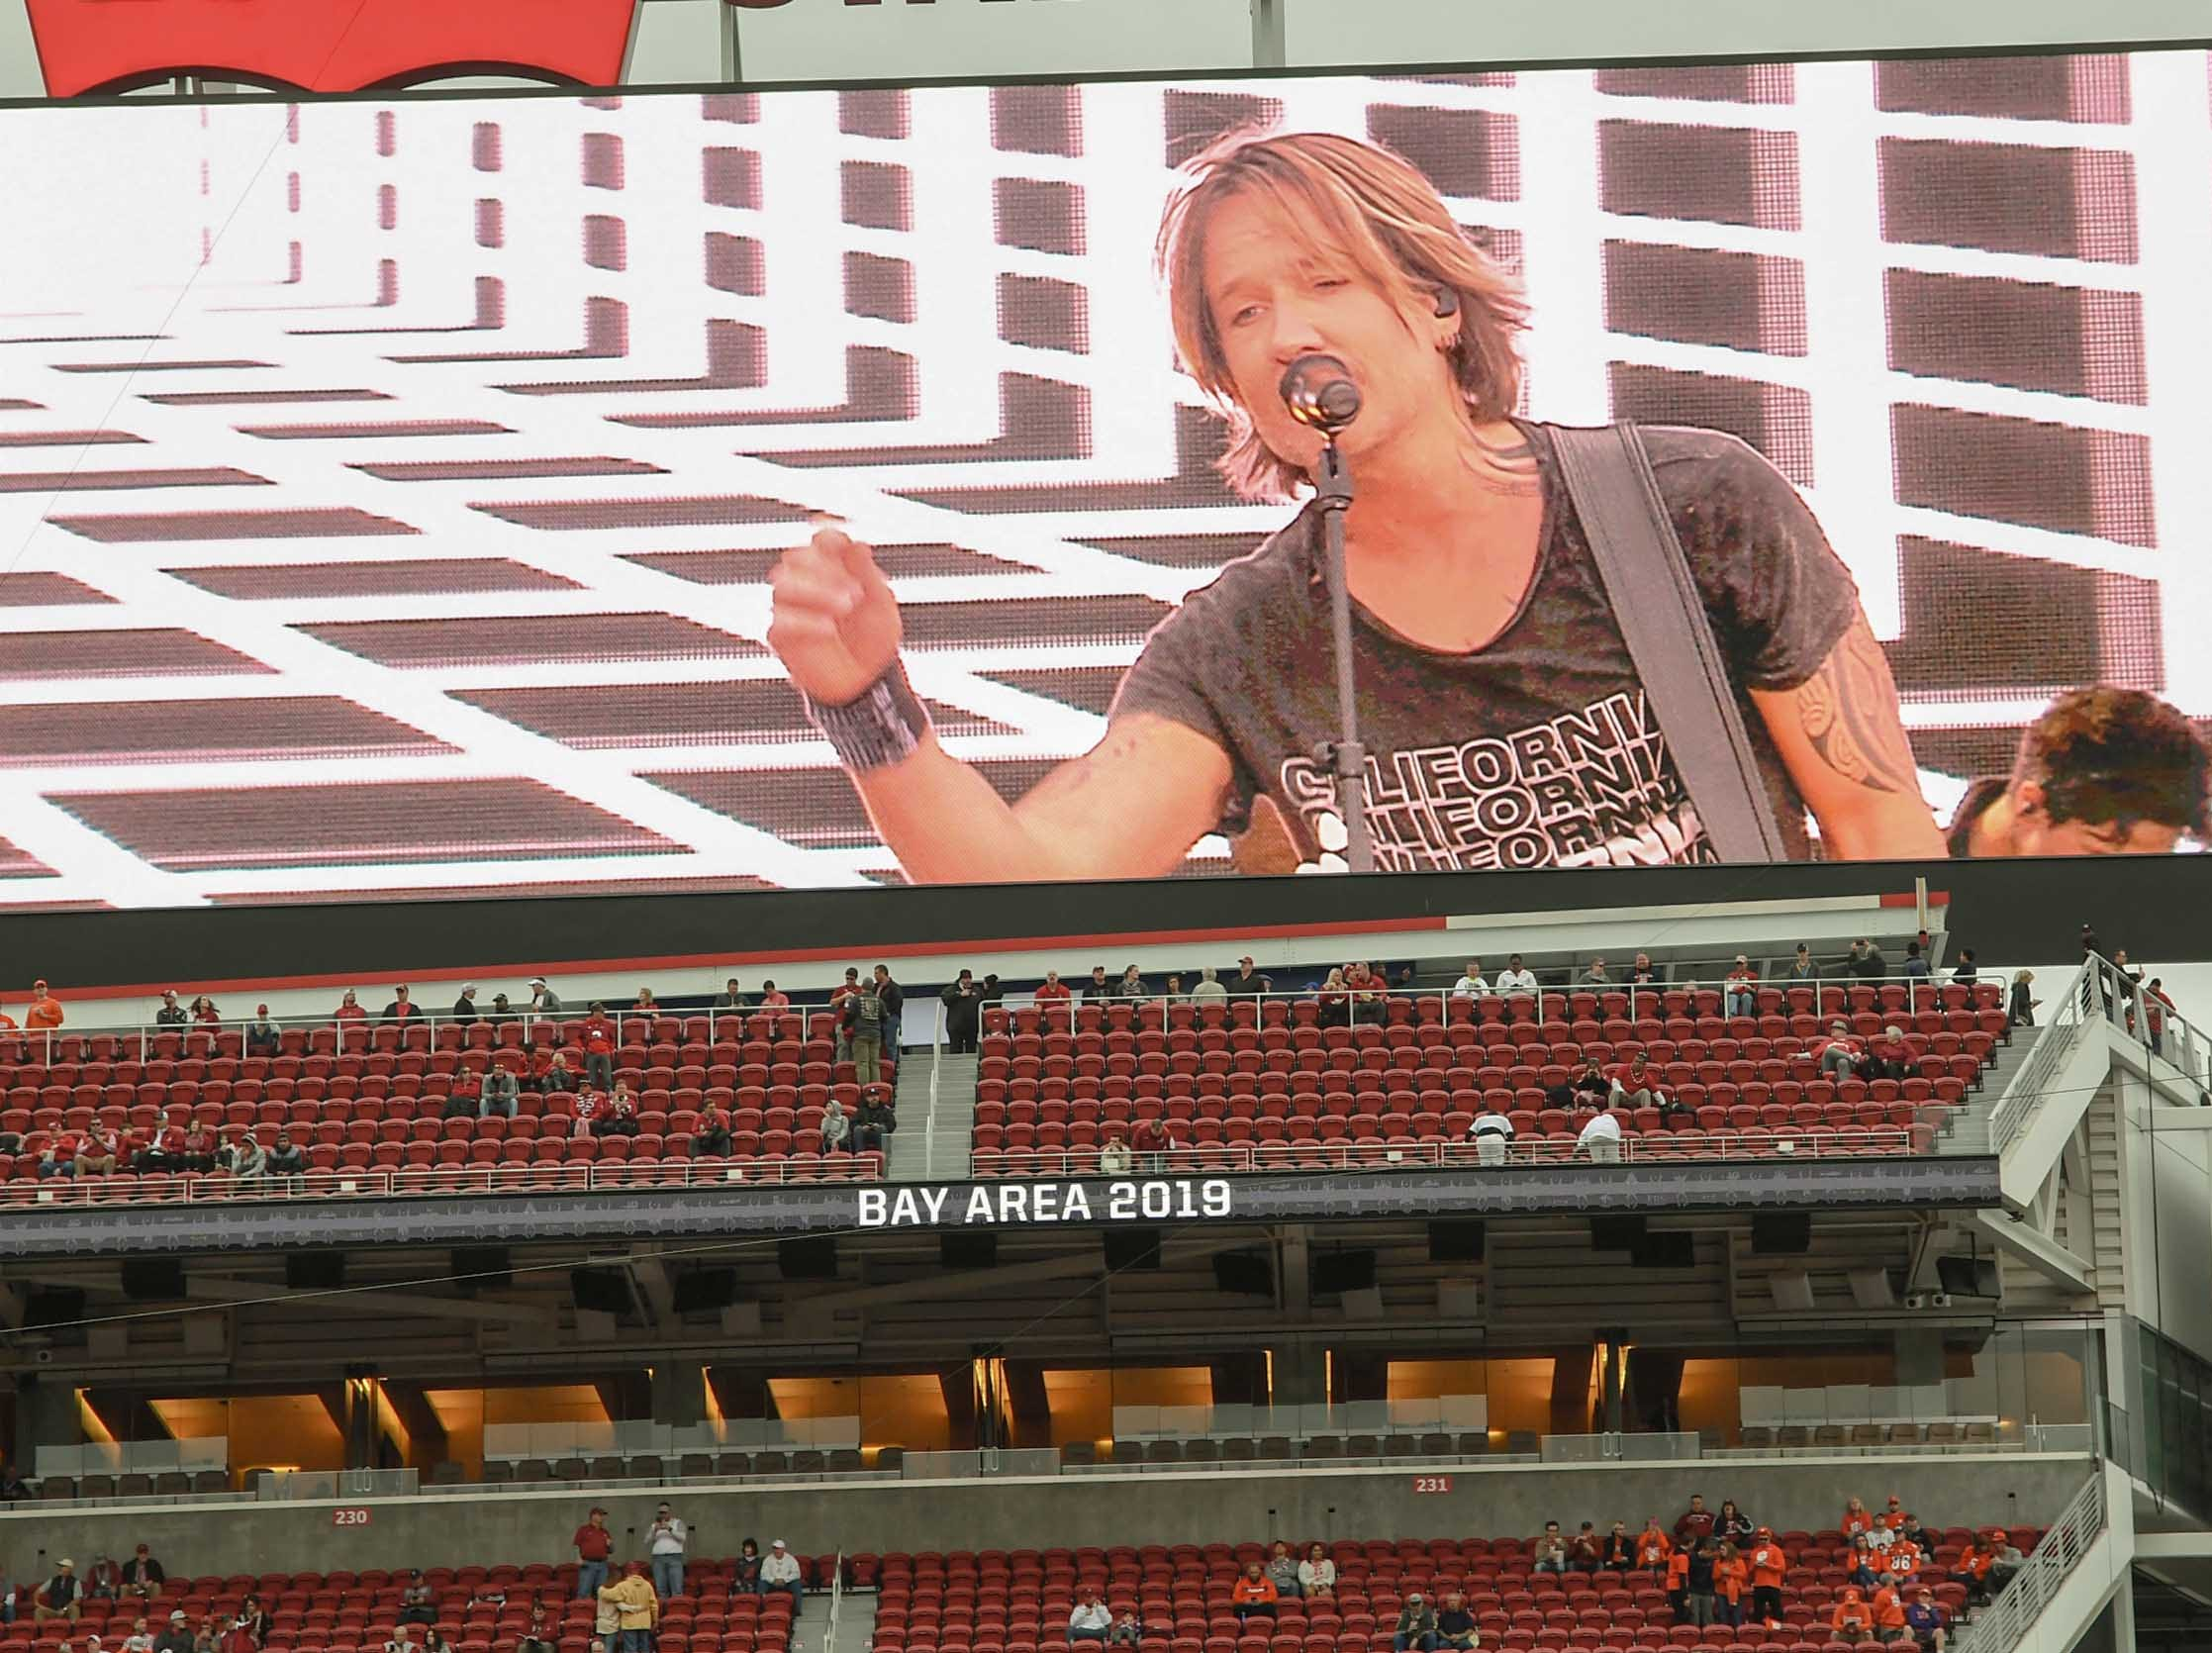 Keith Urban is shown on a large video screen before kickoff at Levi's Stadium in Santa Clara, California Monday, January 7, 2019.